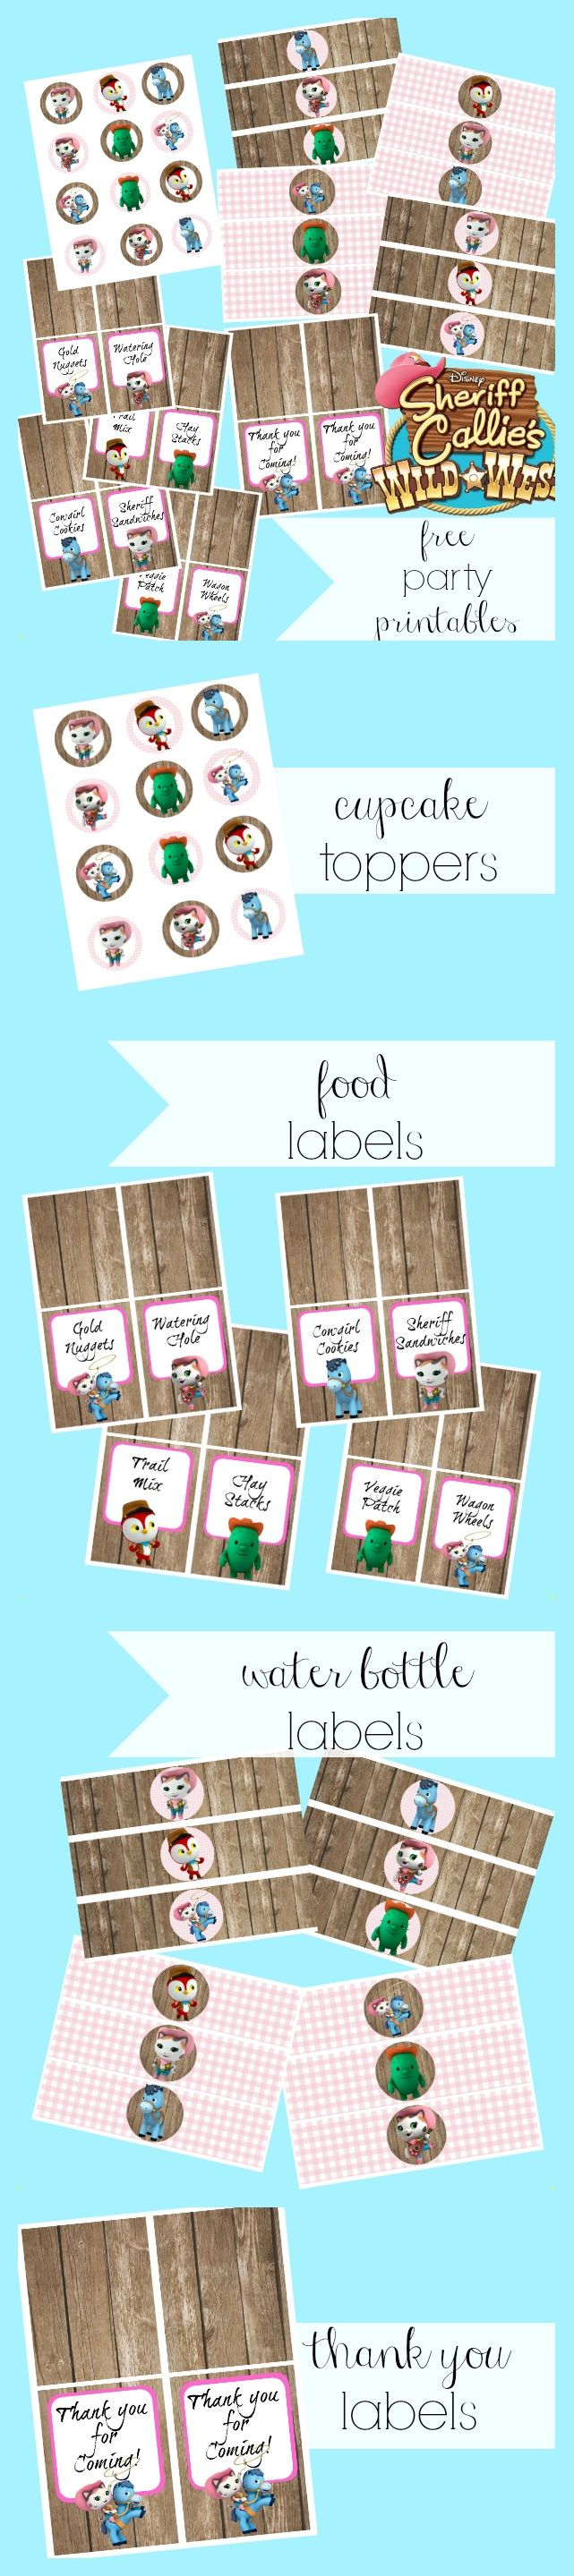 Sheriff Callie Party Printables